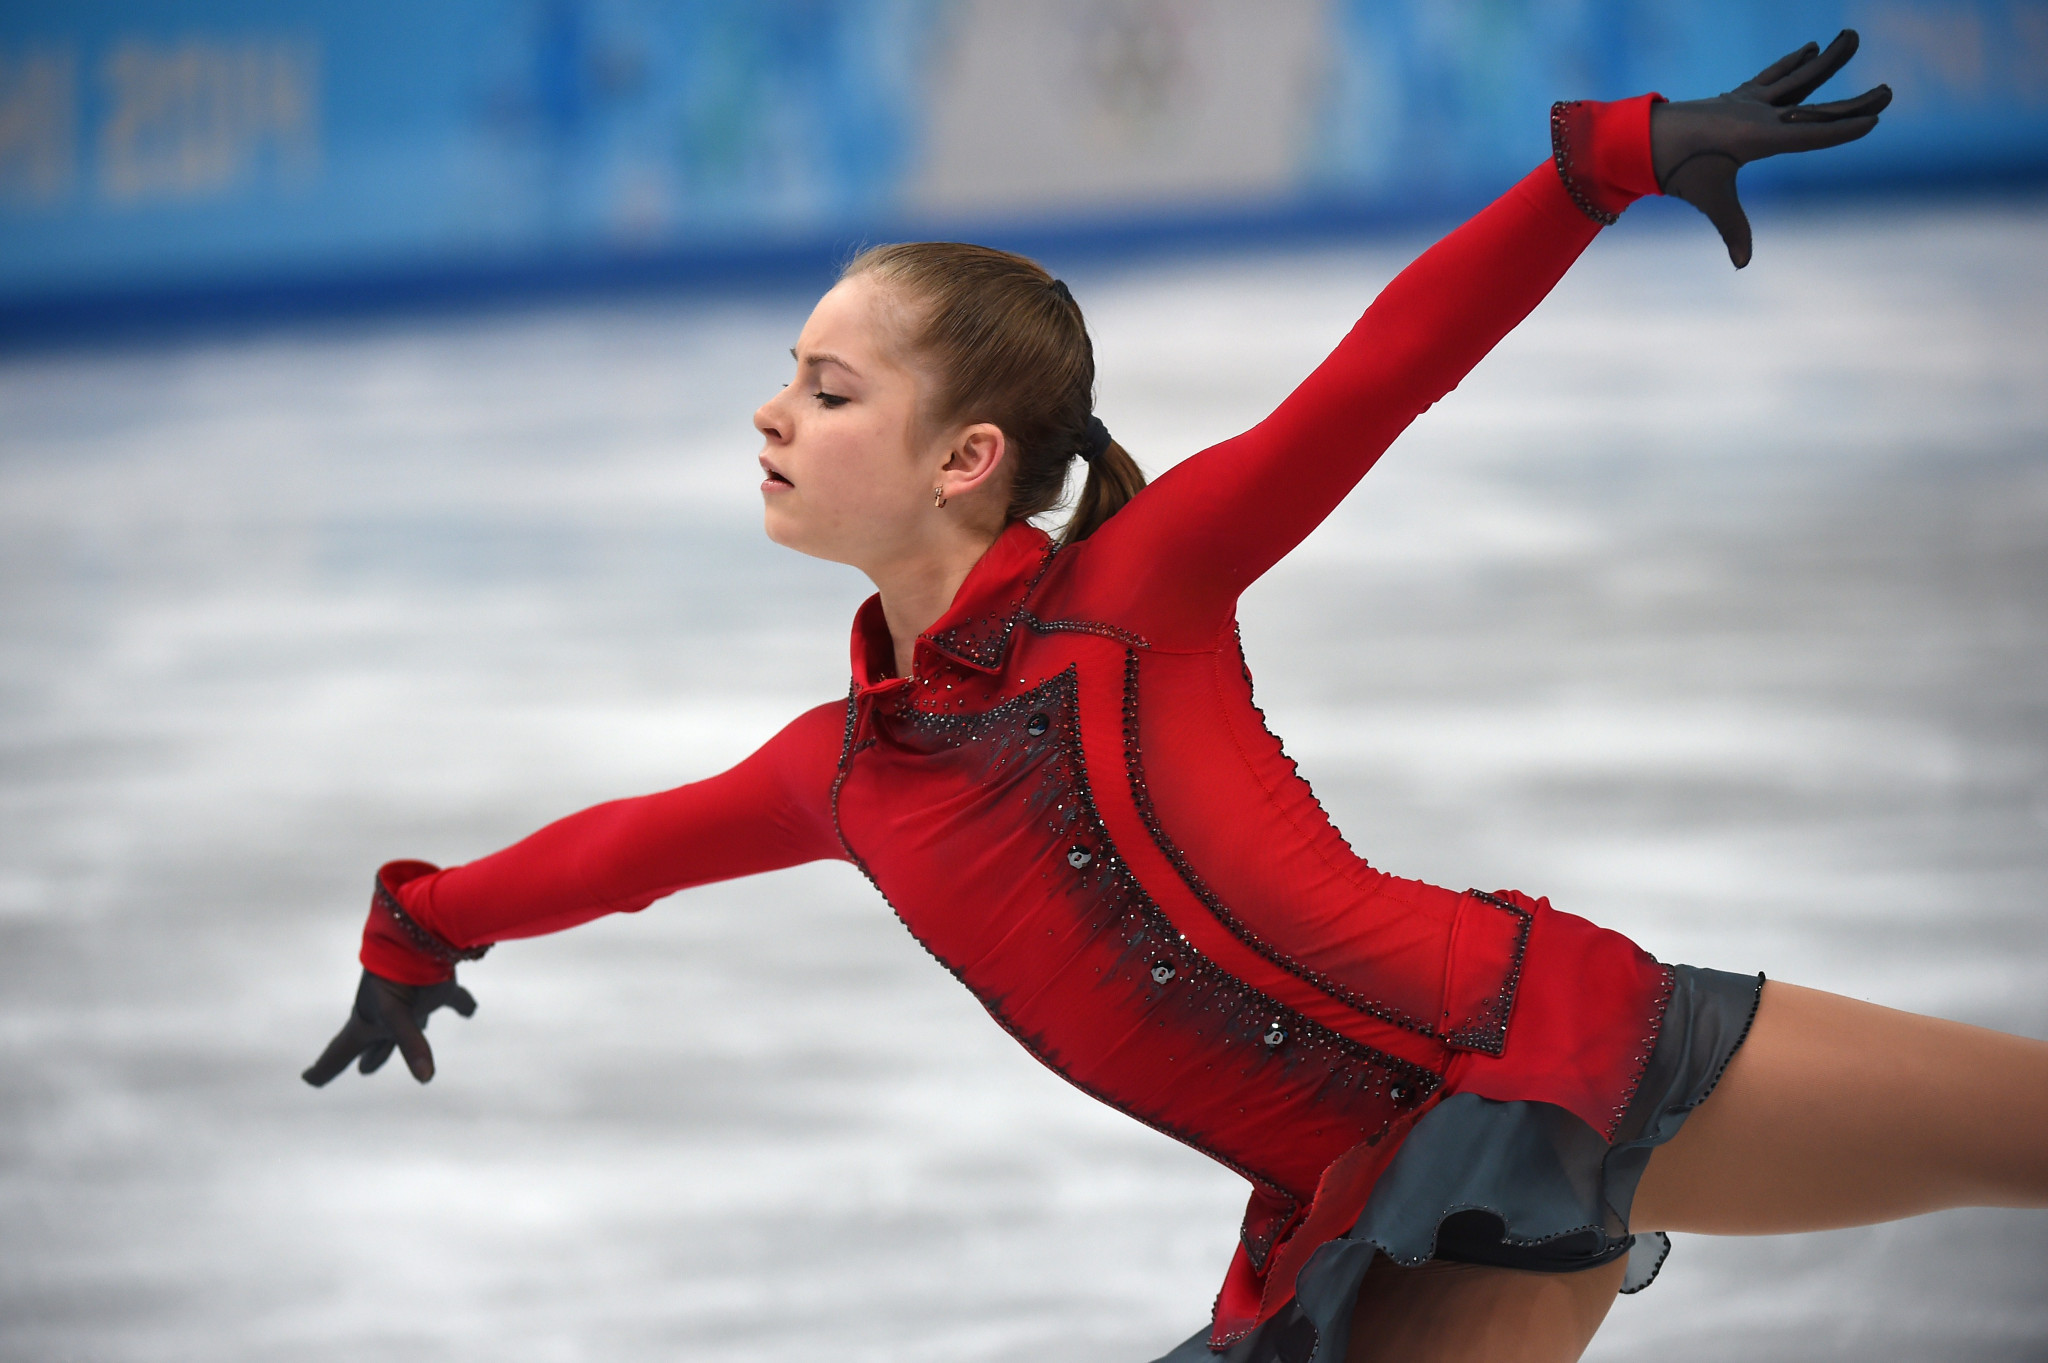 Norway submit figure skating age limit rise despite Russian backlash